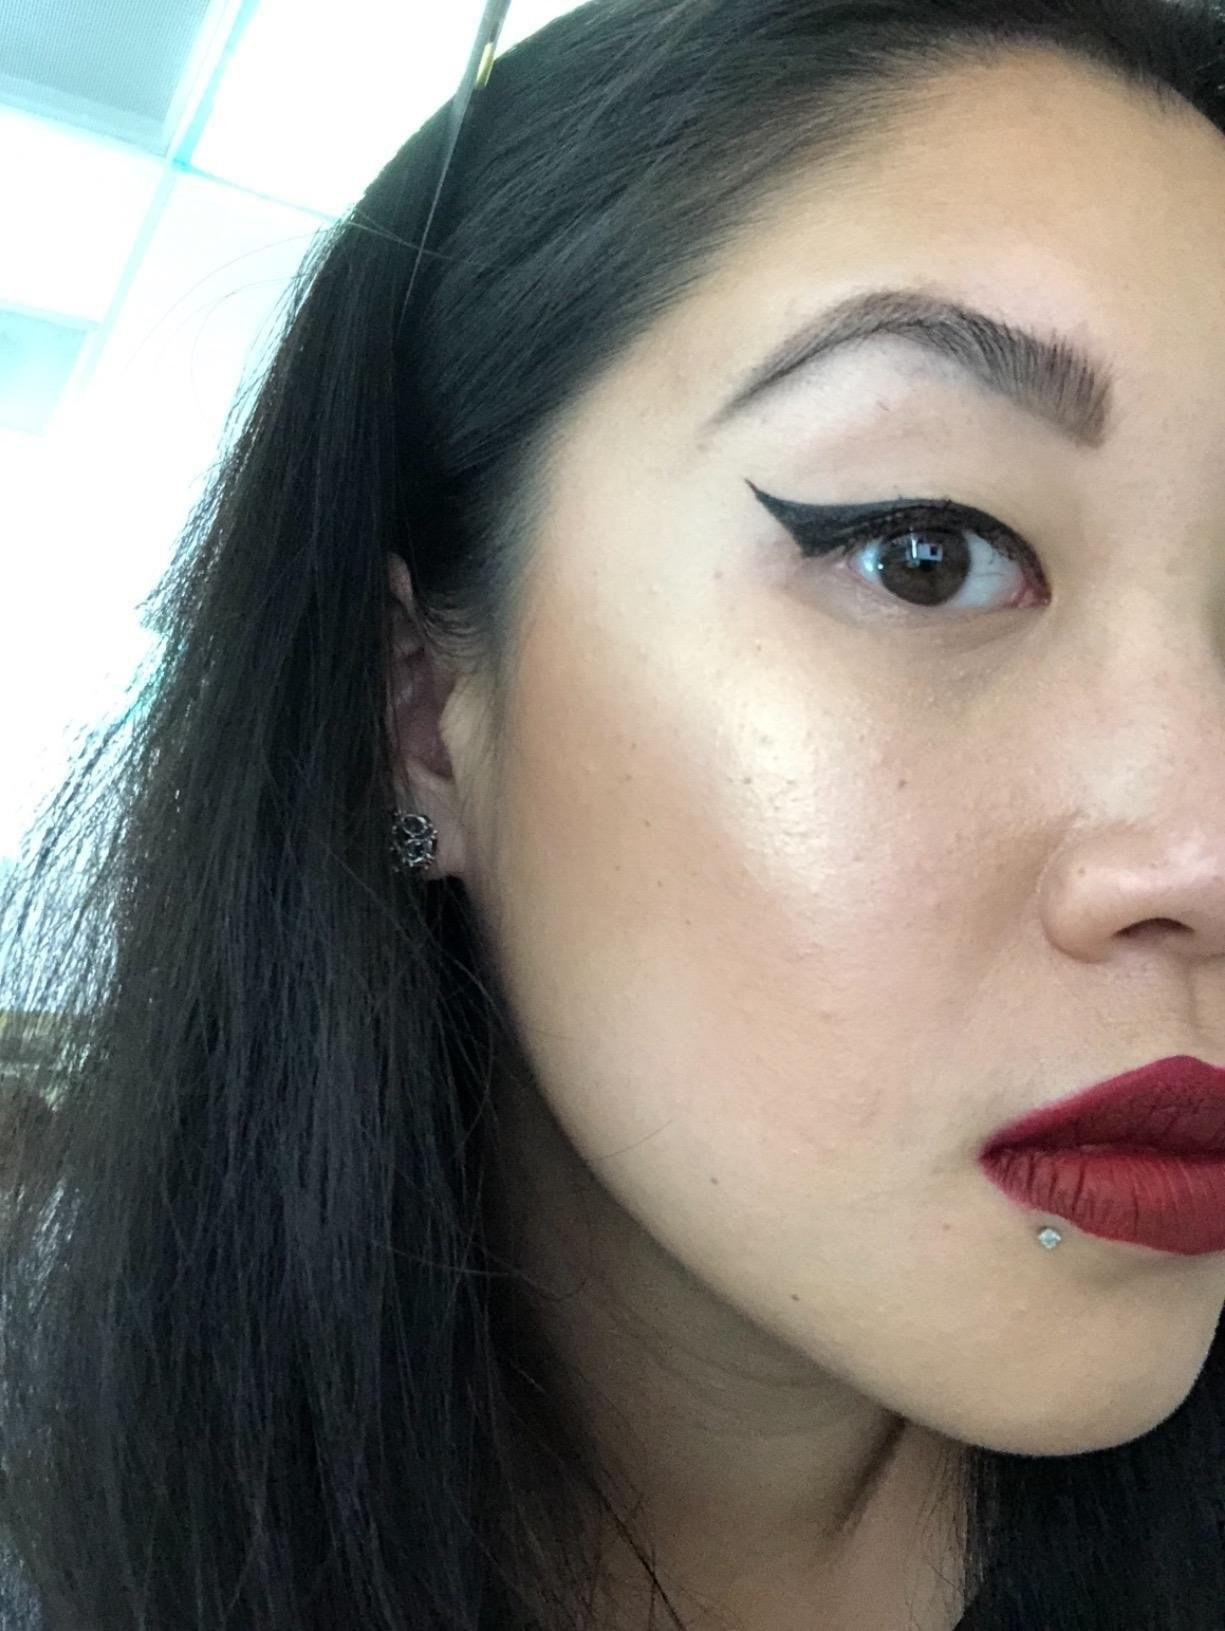 A customer with a full face of makeup and a perfect winged eyeliner using the LA PURE eyeliner